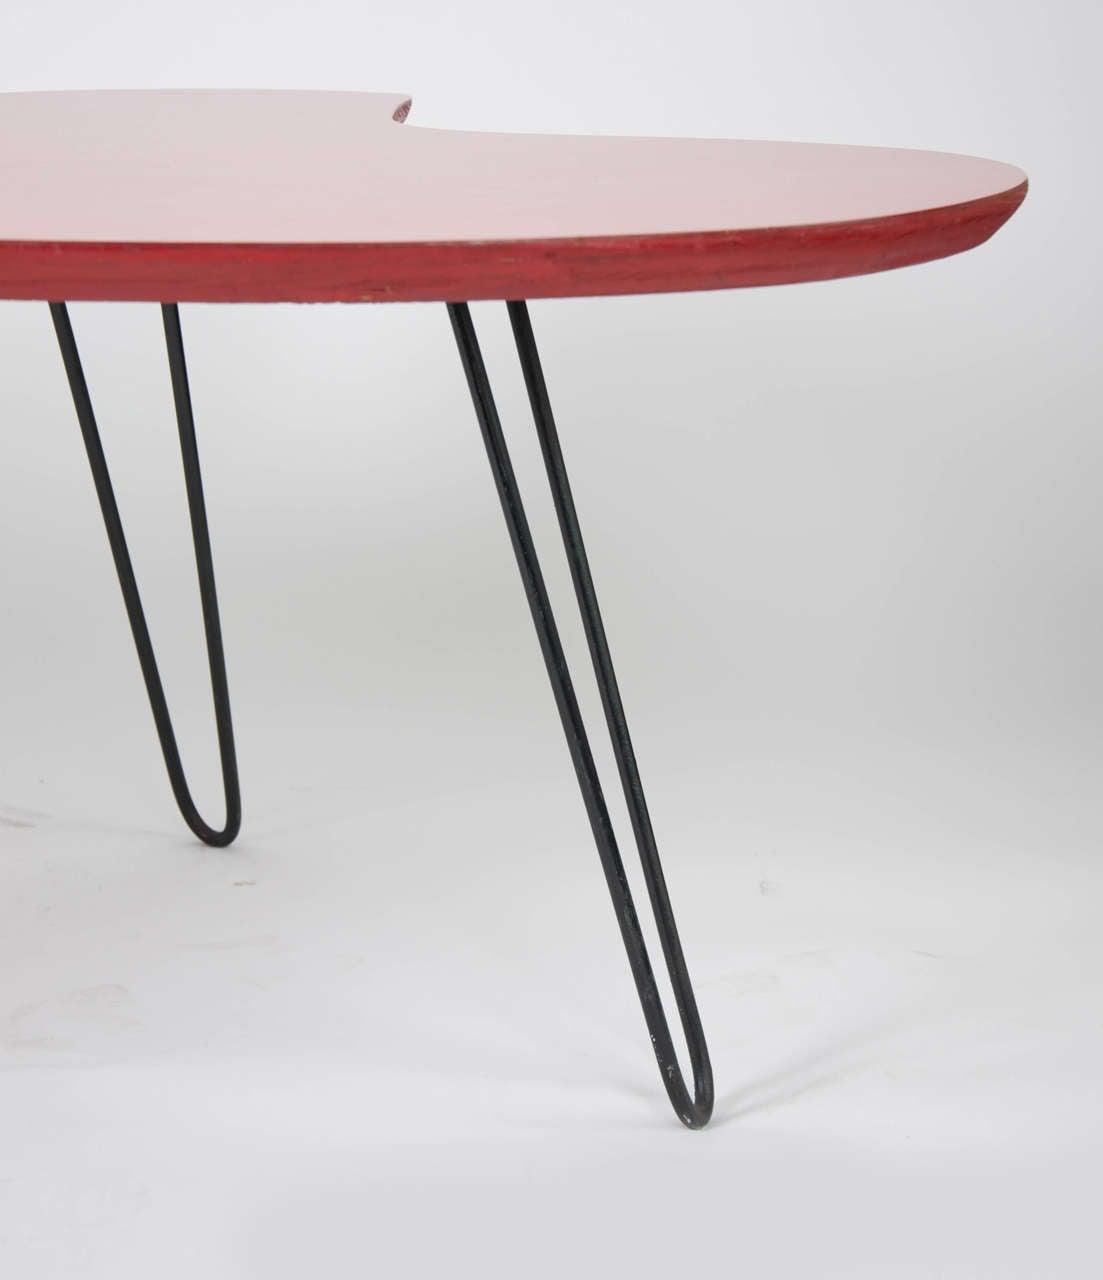 Red formica coffee table at 1stdibs for Table formica